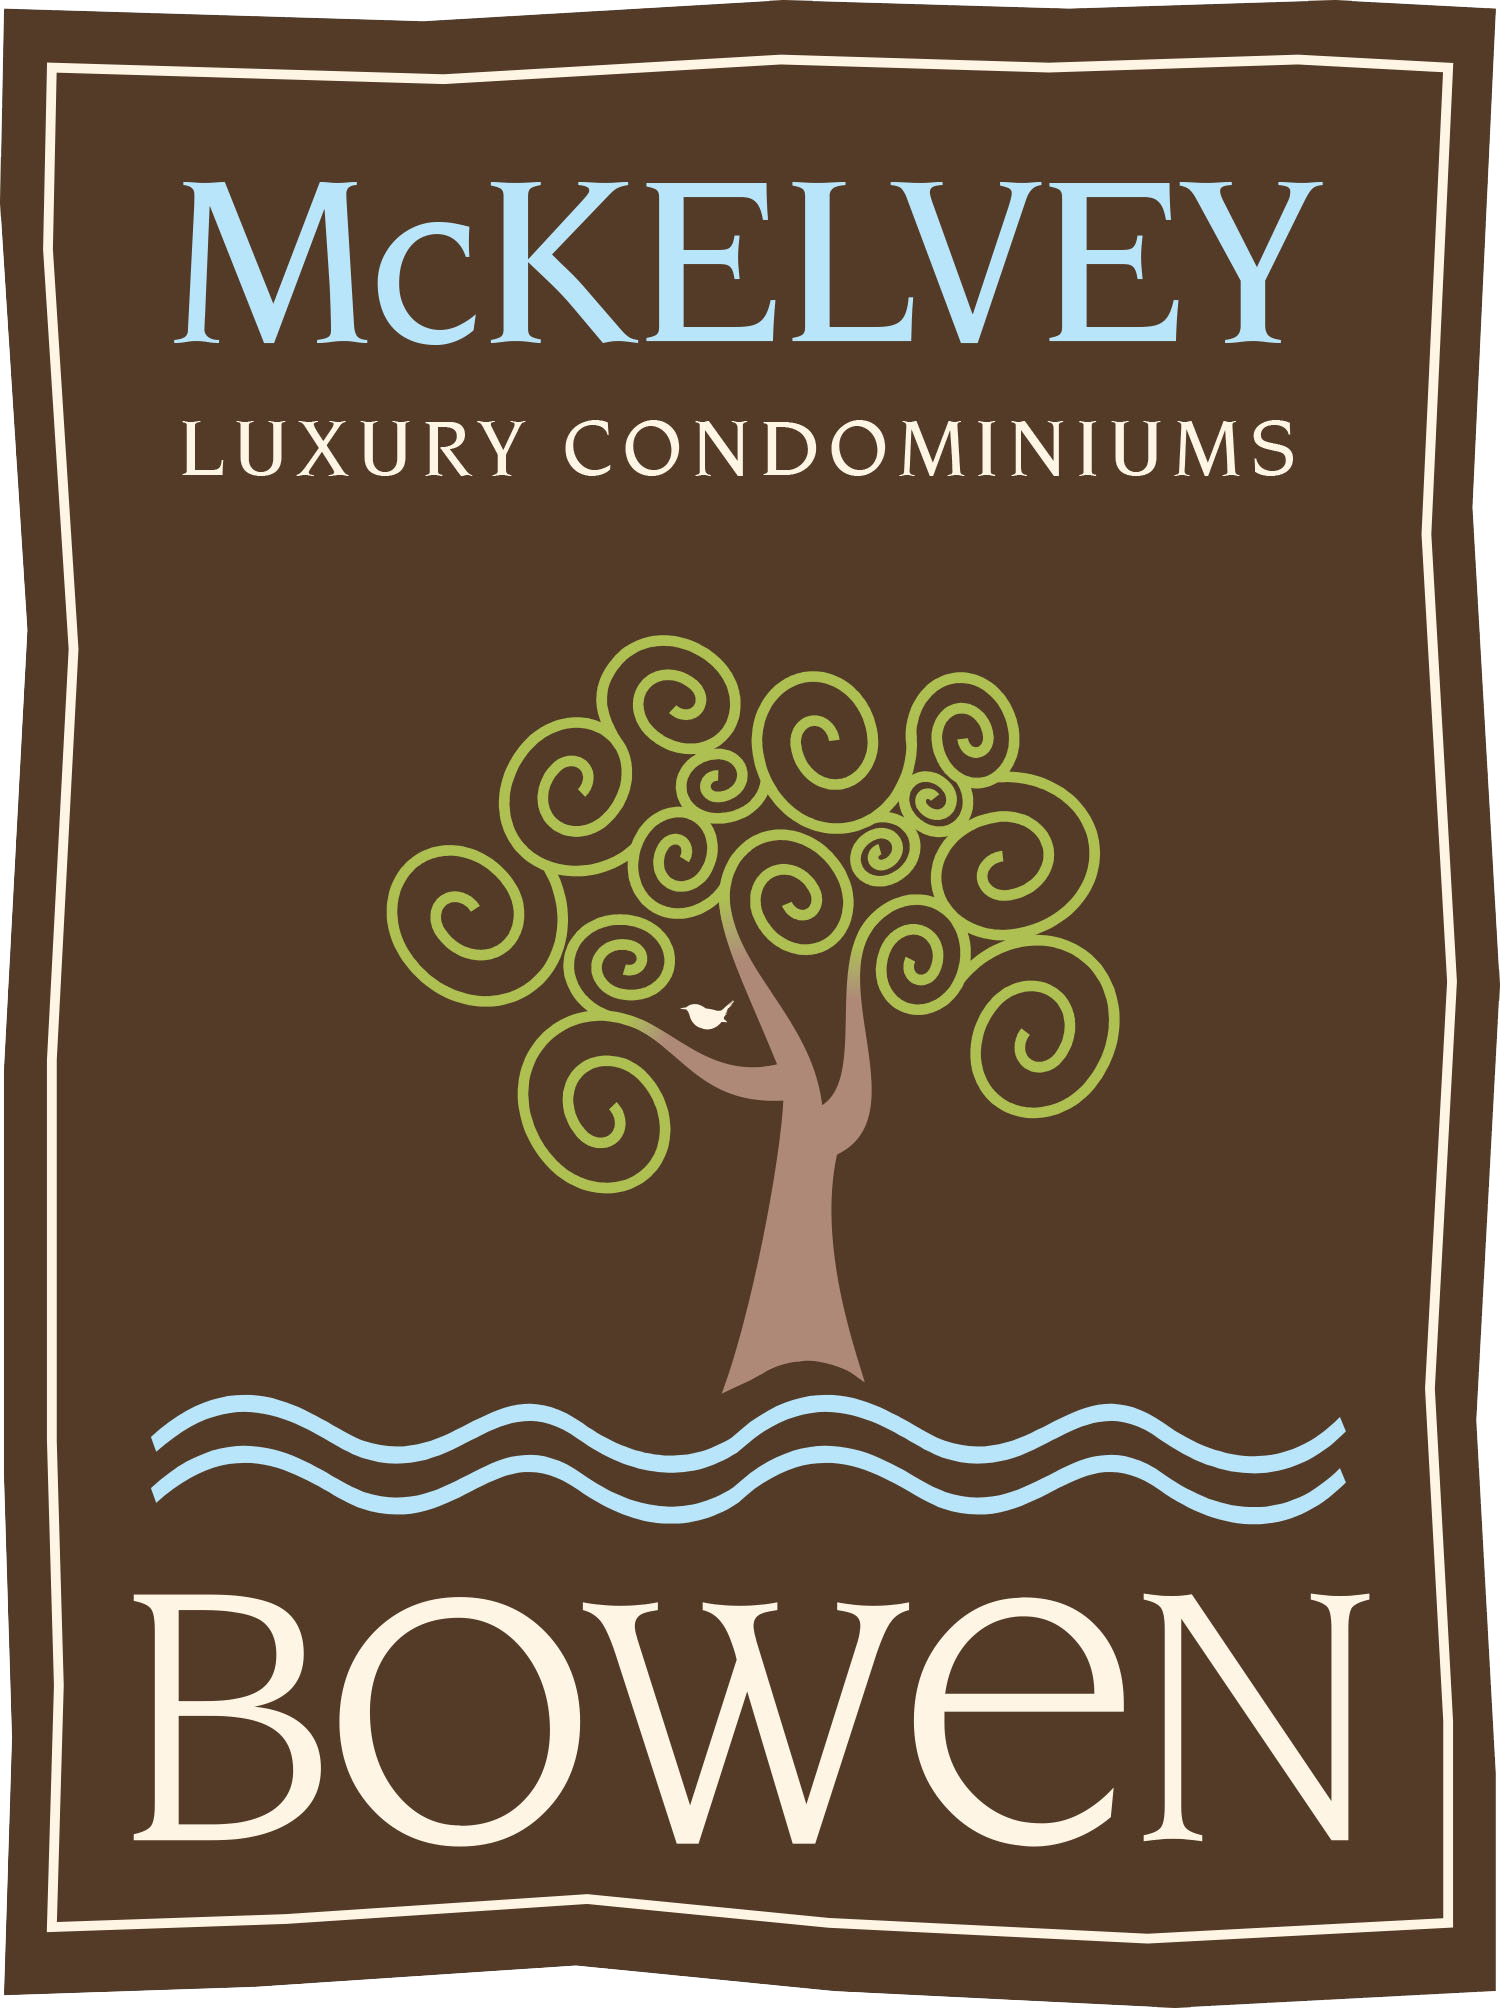 The McKelvey at Bowen